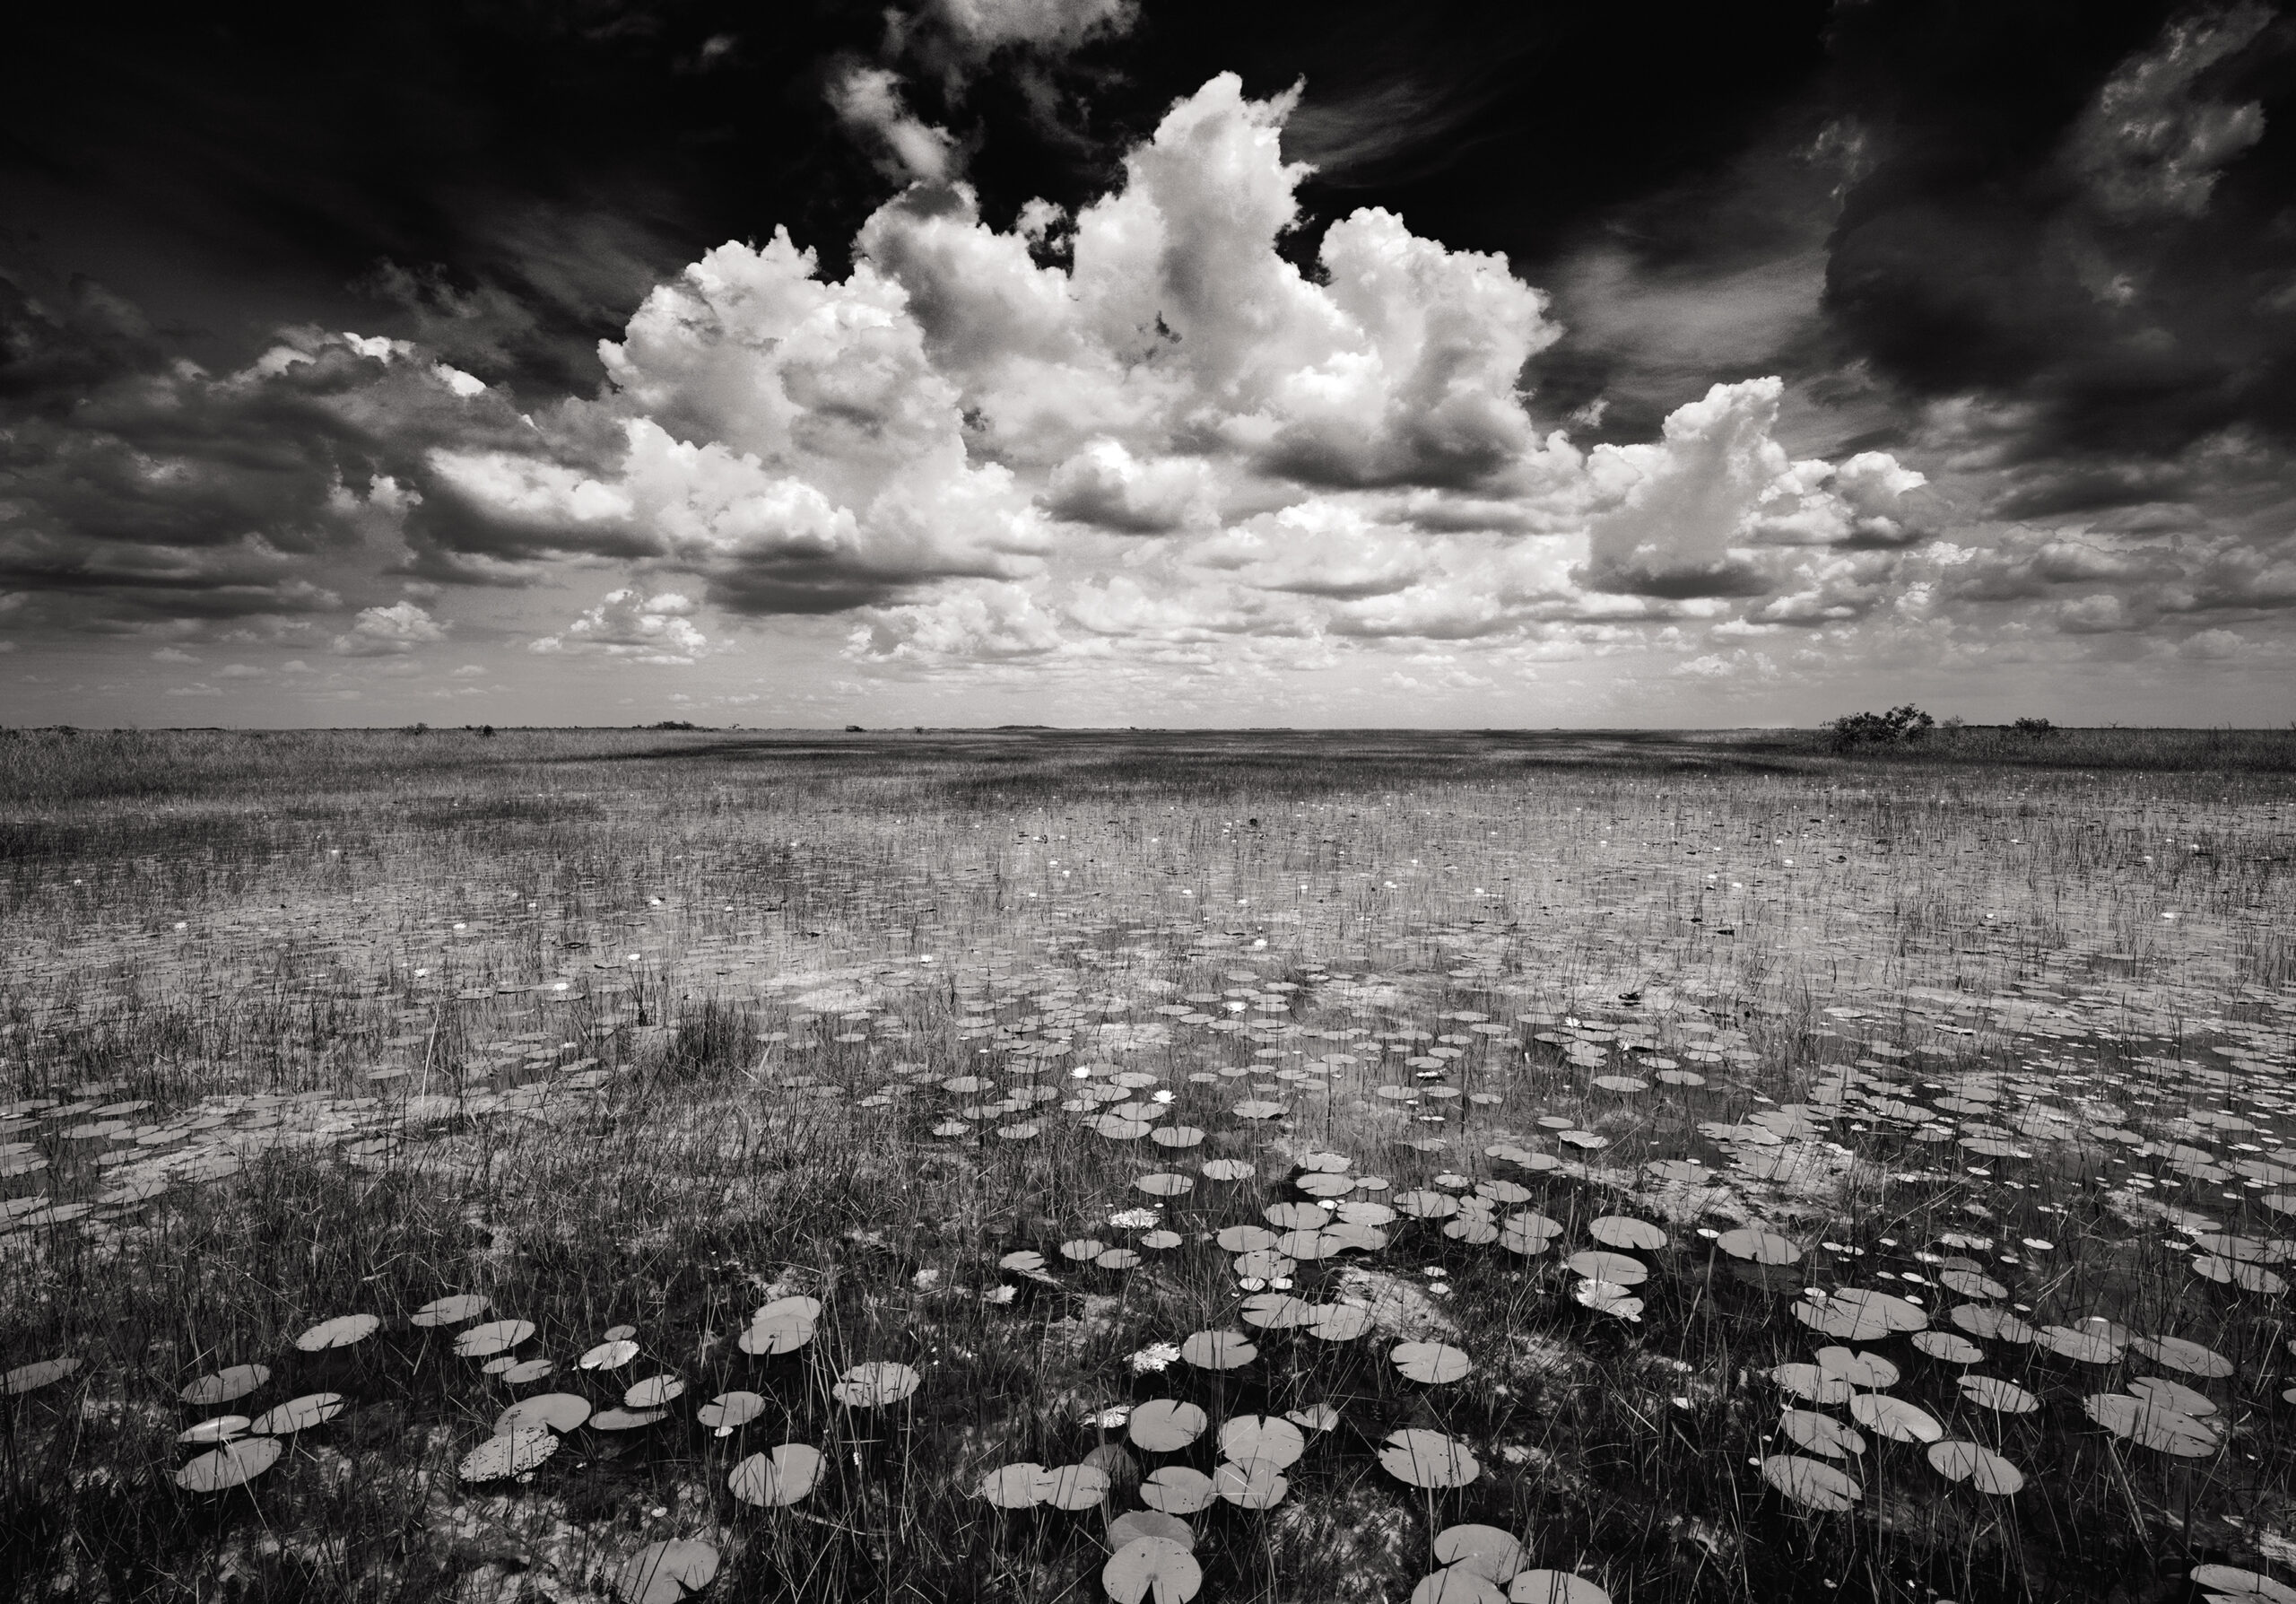 Black and white detailed image of Florida Everglades swamo with scattered lillypads and reeds leading to a horizon and a beautiful cloud centered above the horizon